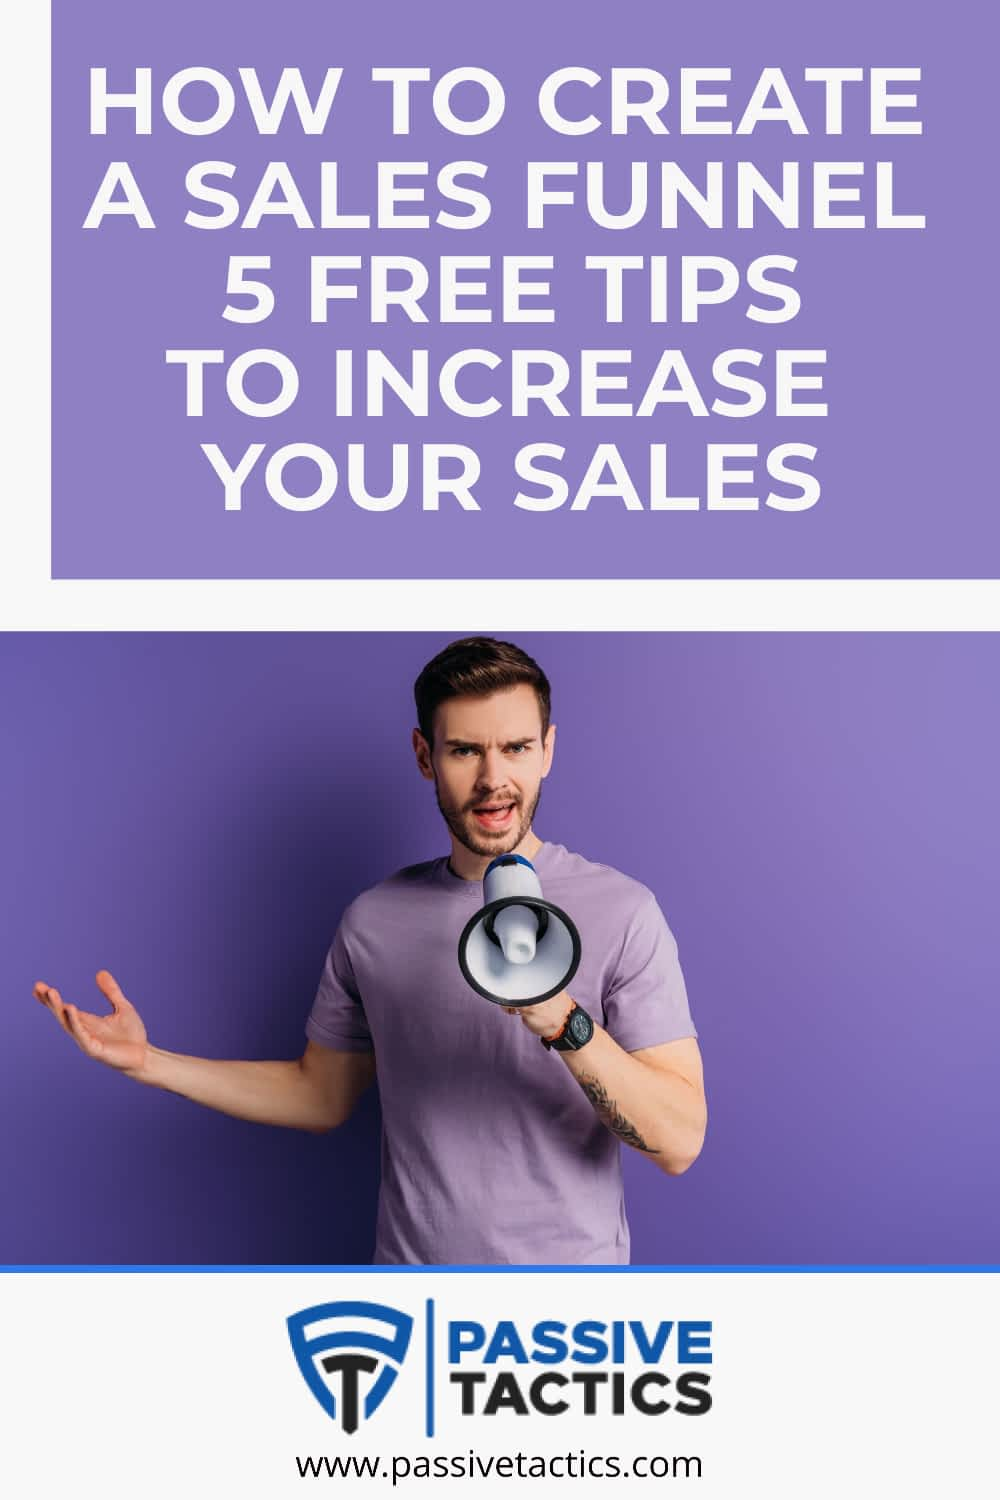 How To Create A Sales Funnel & 5 Free Tips To Increase Your Sales